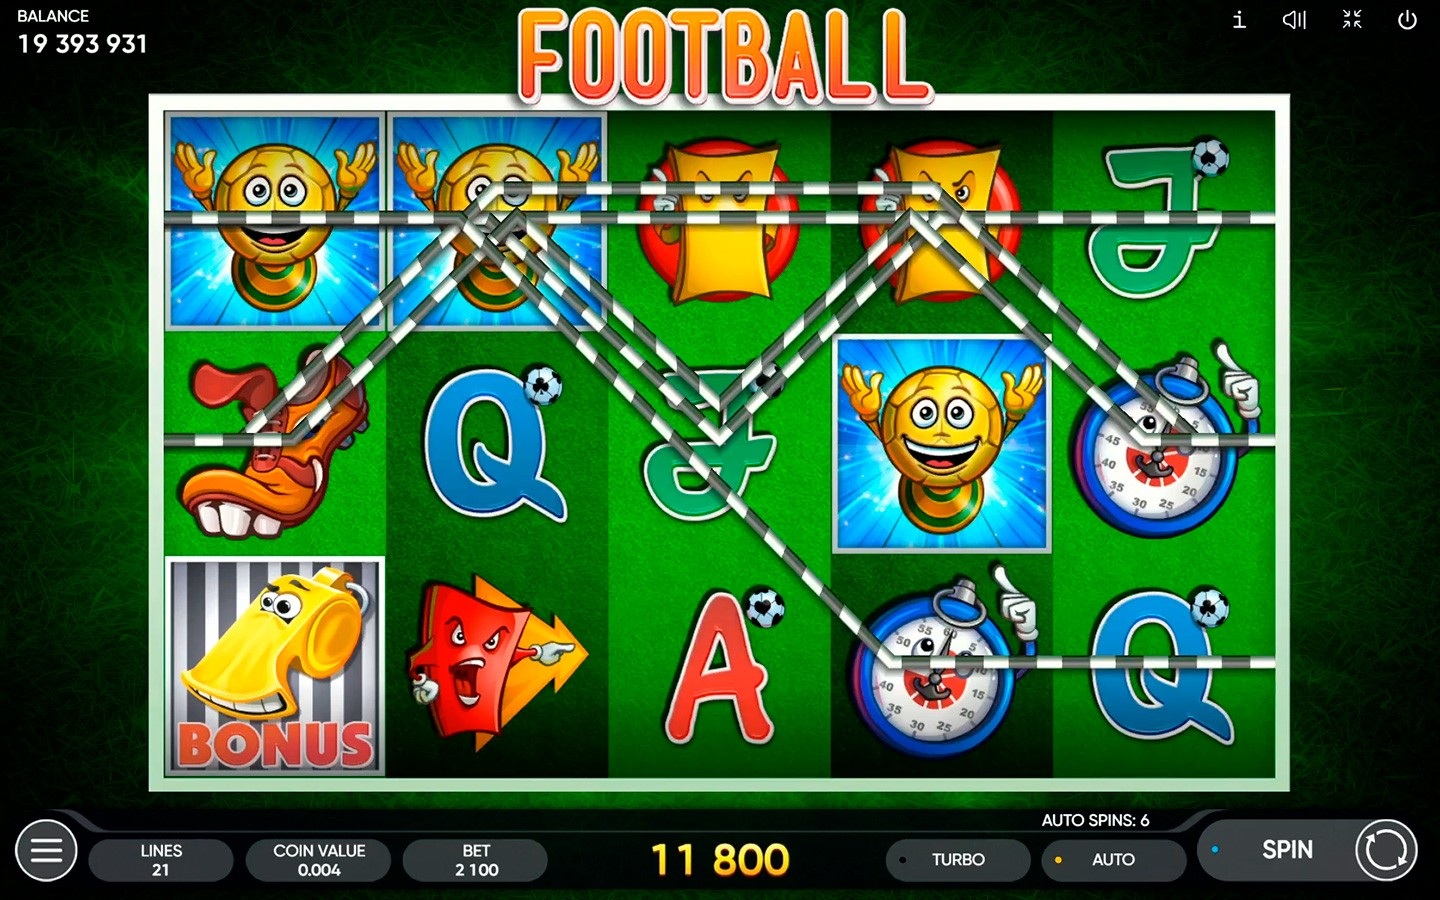 NEXT-GEN 2021 FOOTBALL SLOTS | Try Football game now!